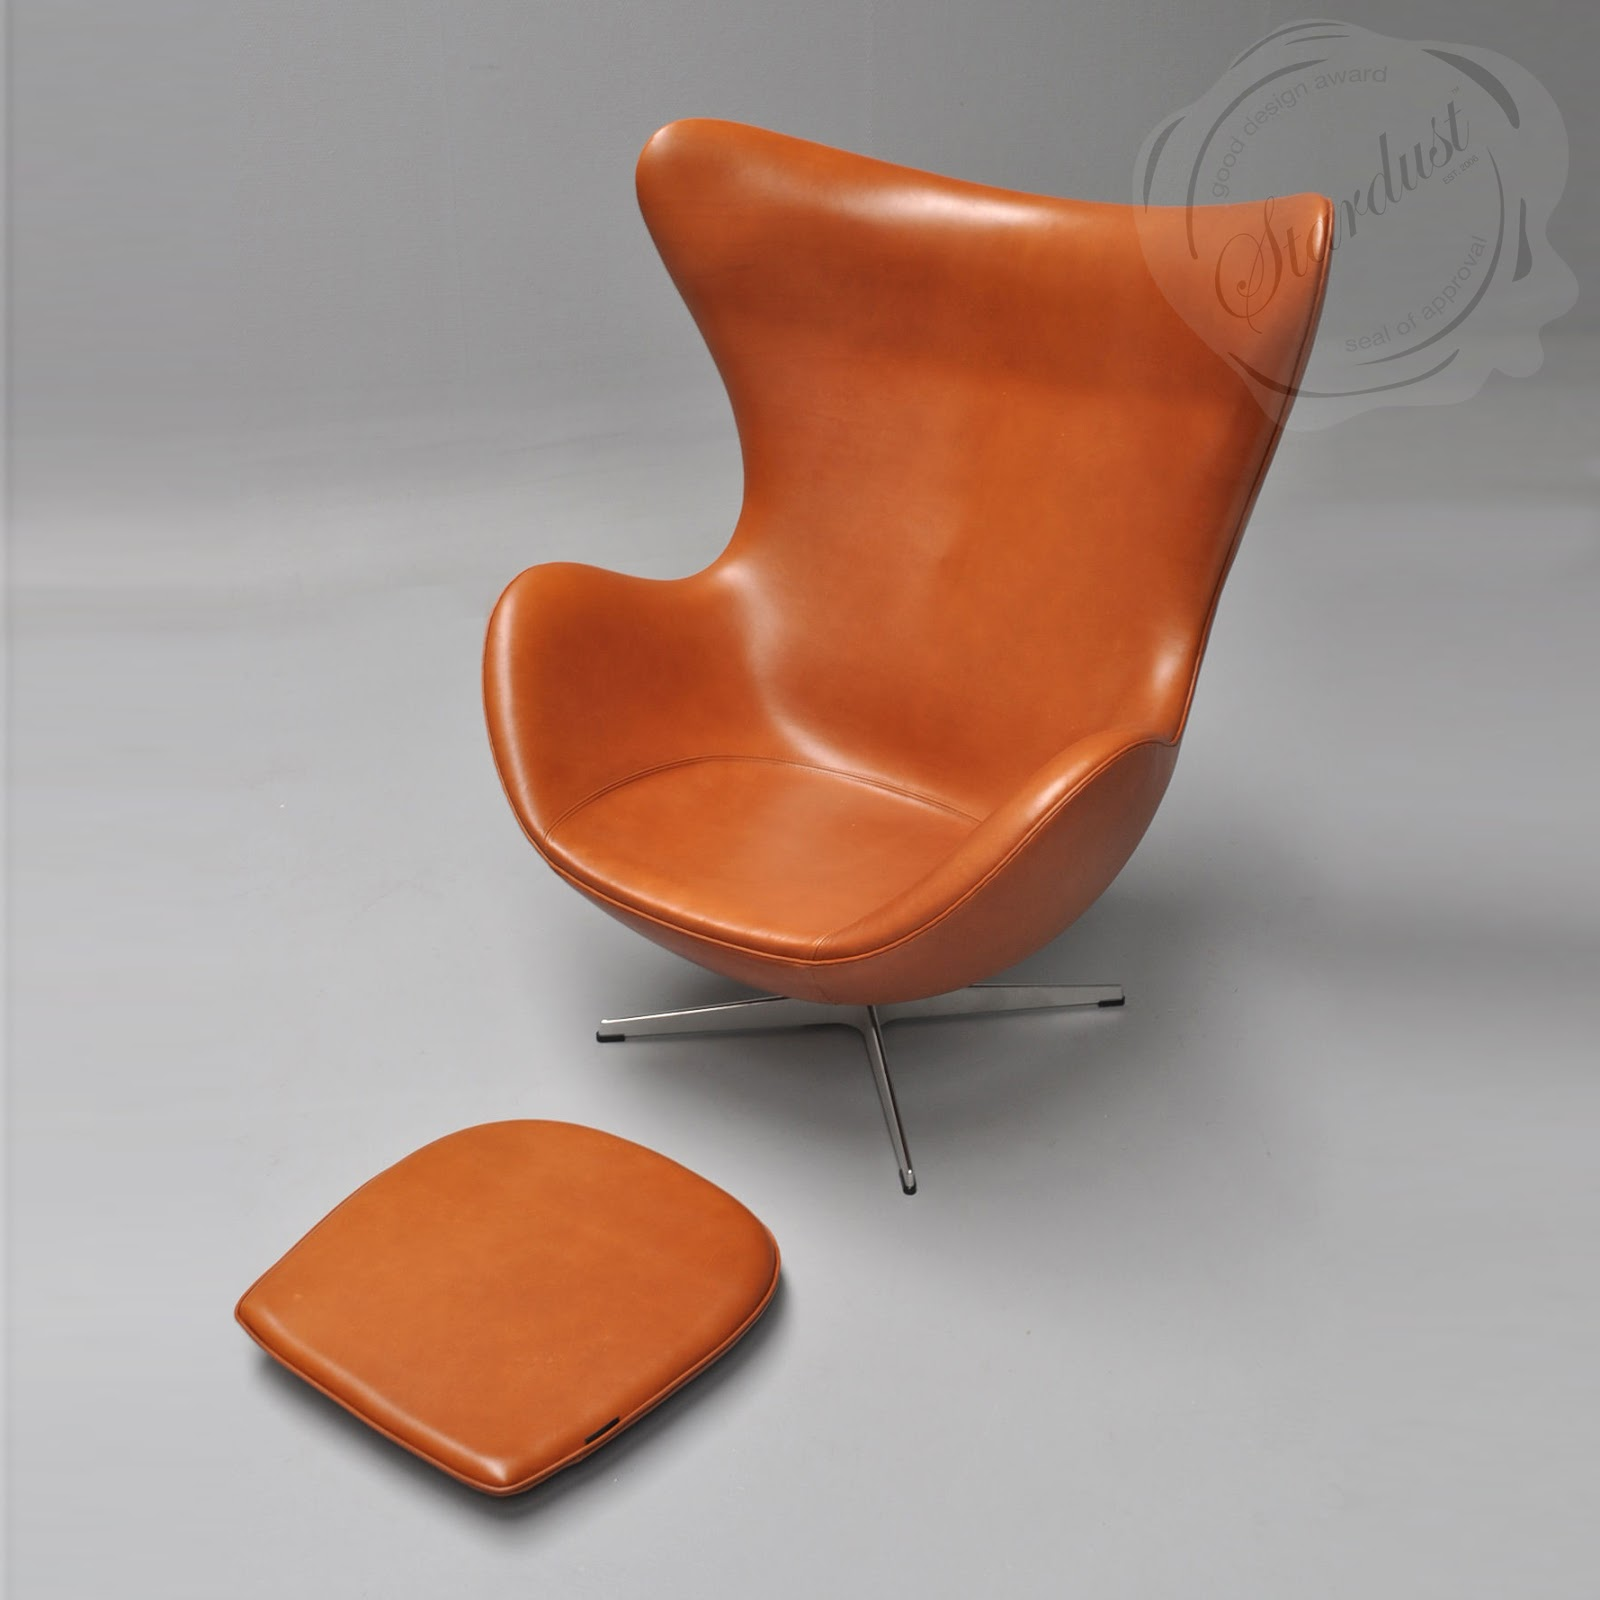 Arne jacobsen egg chair leather - Bomber Jacket Leather Egg Chair With Tiltlock Mechanism Zb21gg Modern Interior Design